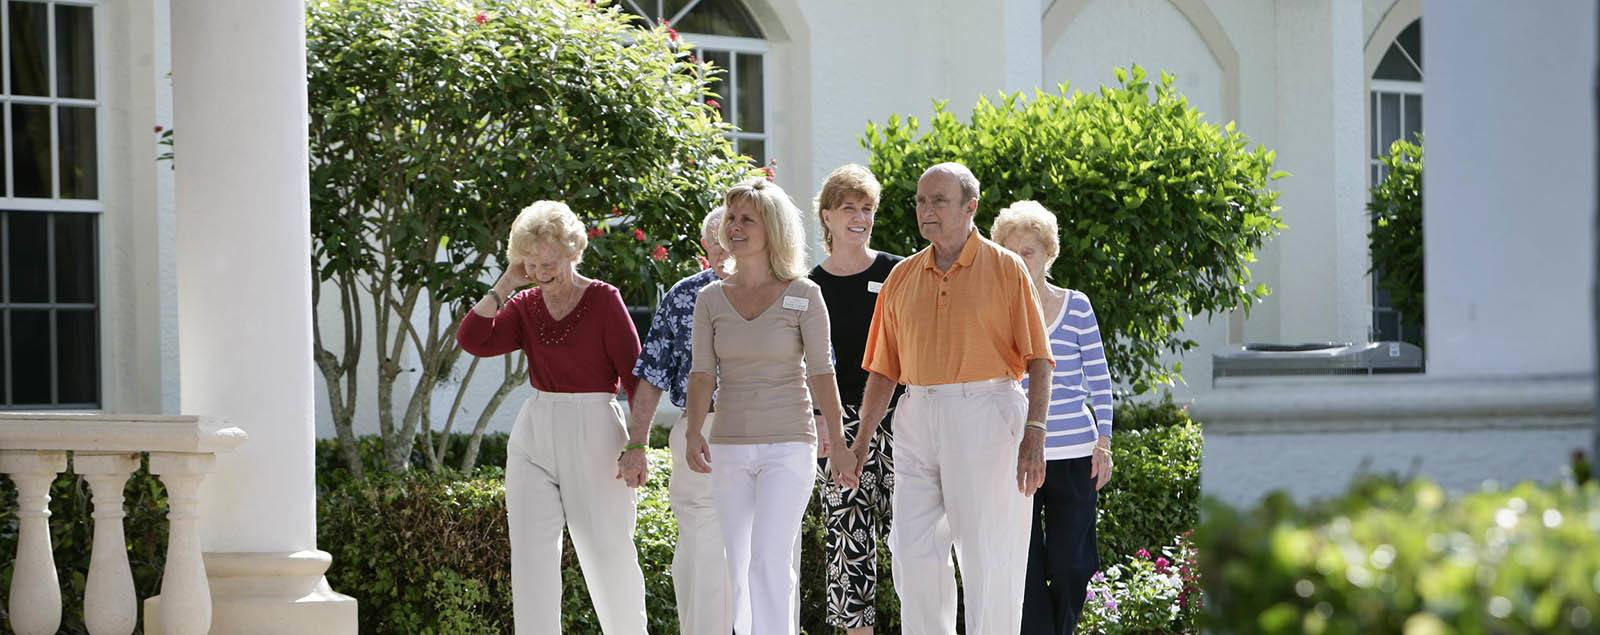 Request a Naples senior living facility brochure